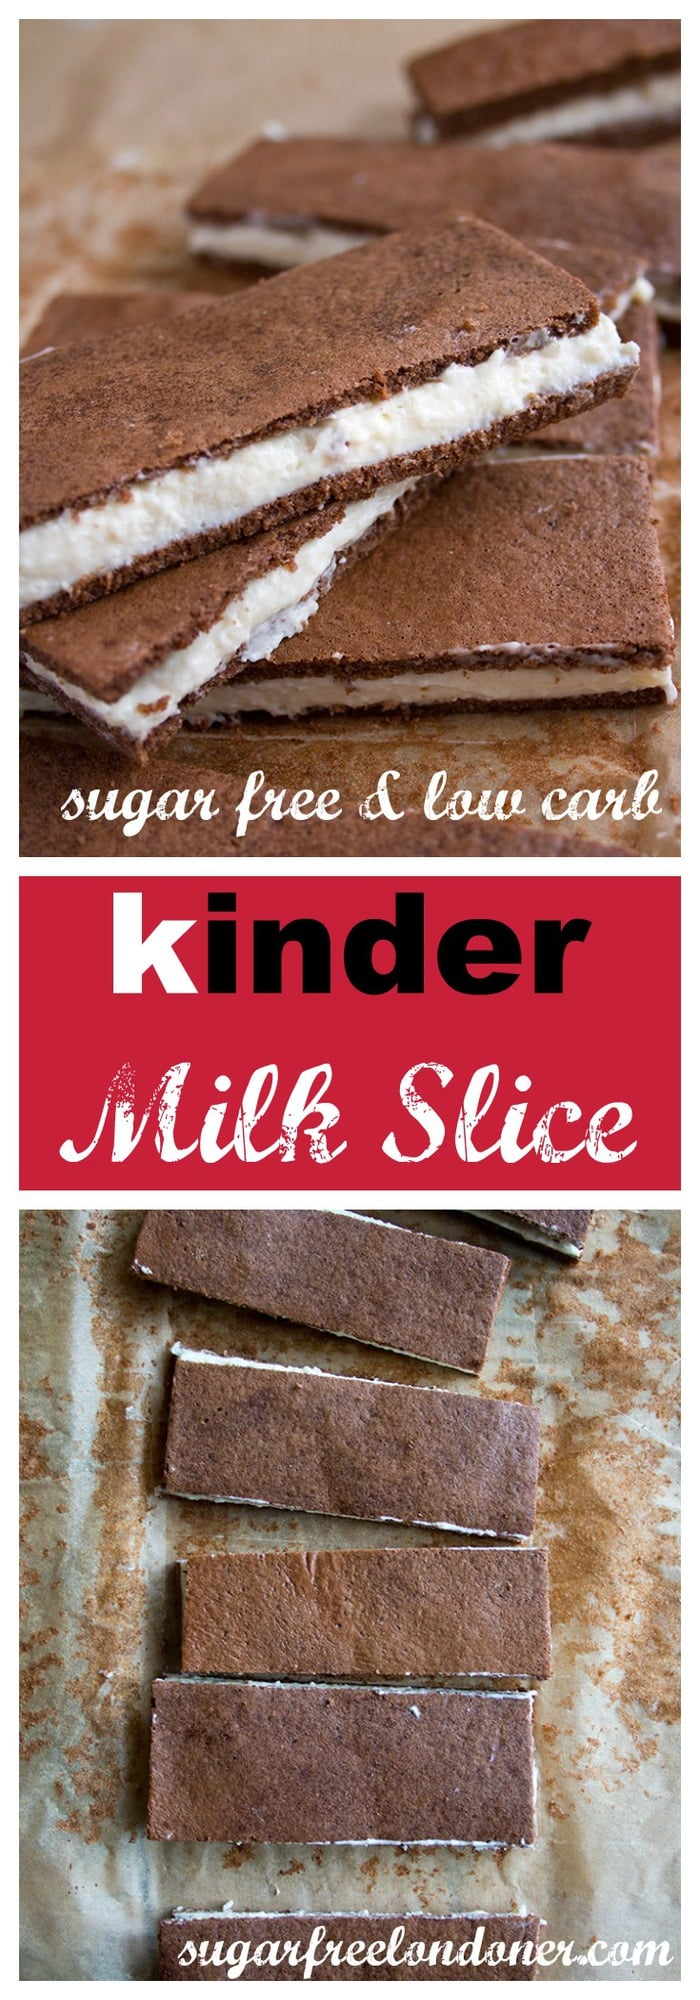 In Germany it's called Milchschnitte, in its home country Italy it's Fetta al Latte. You'll love this  sugar free and low carb version of the European cult snack bar kinder milk slice! Delightfully soft chocolate sponge with a creamy, milky centre - a sweet snack without the carb load. #sugarfree